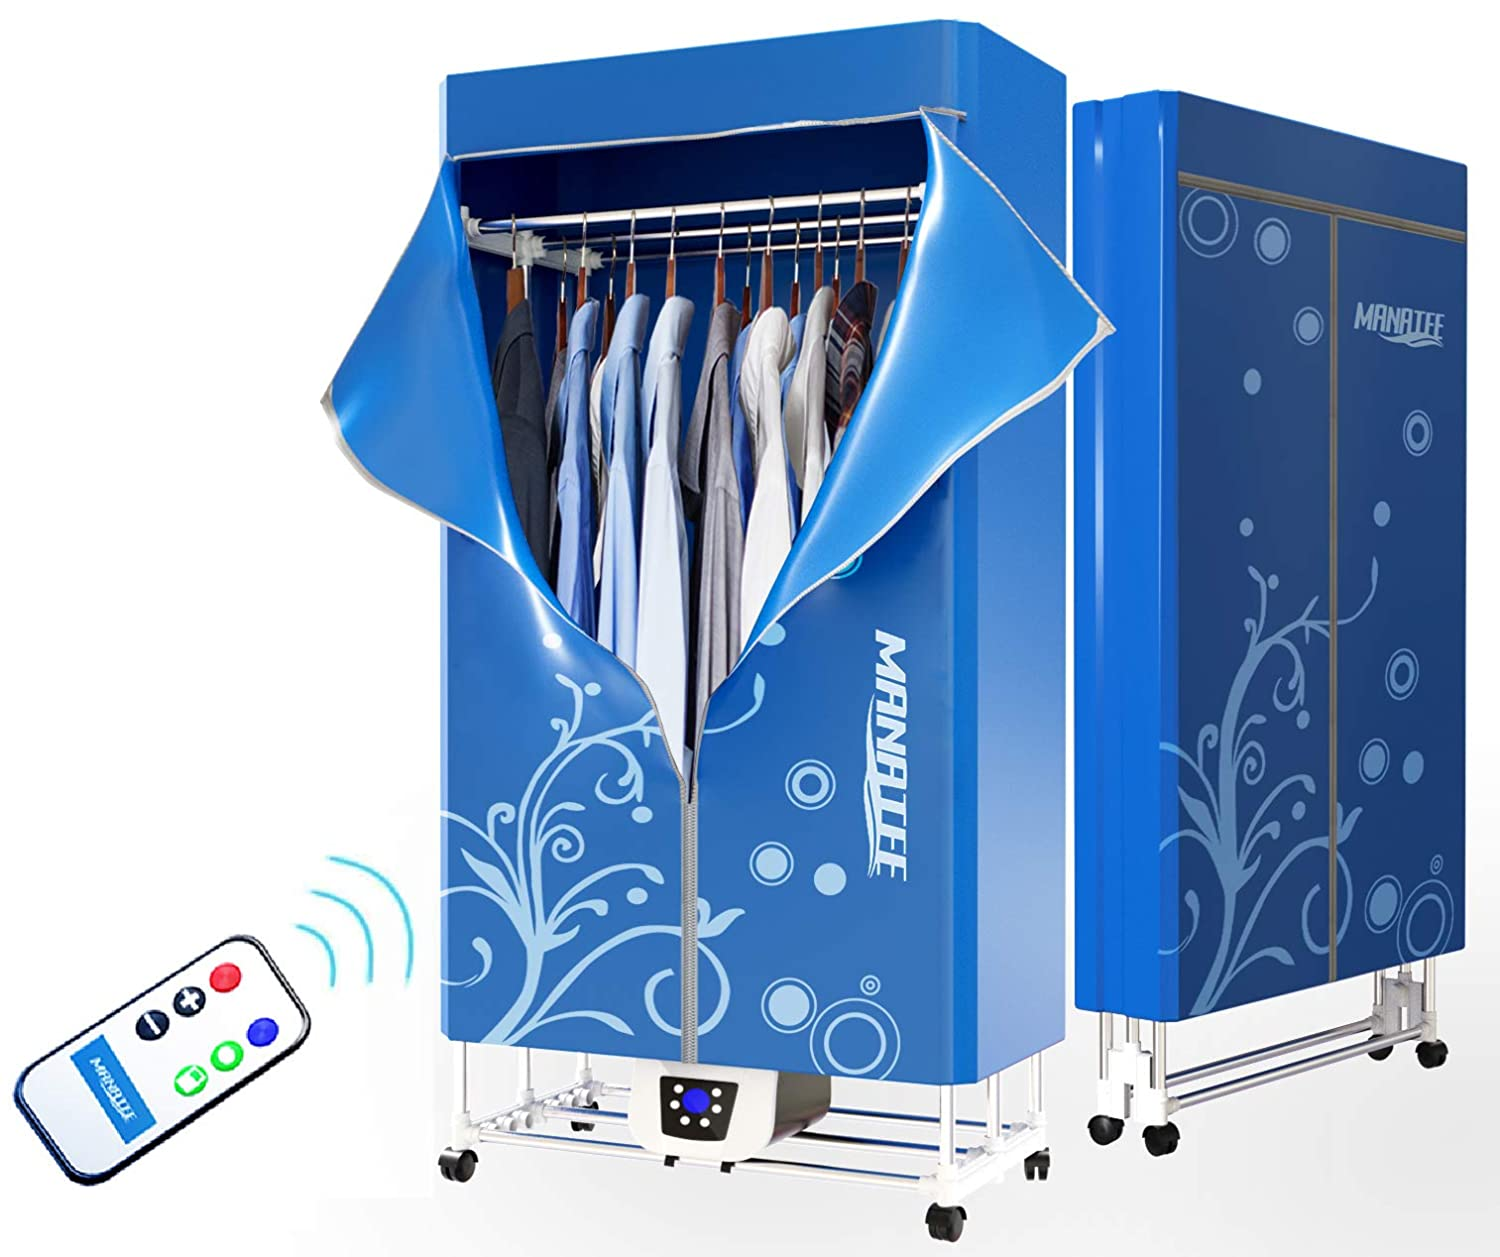 Portable Clothes Dryer 1200W Electric Laundry Drying Rack 33 LB Capacity Best Energy Saving (Anion) Folding Dryer Quick Dry & Efficient Mode Digital Automatic Timer with Remote Control bubblebagdude PDMNT01